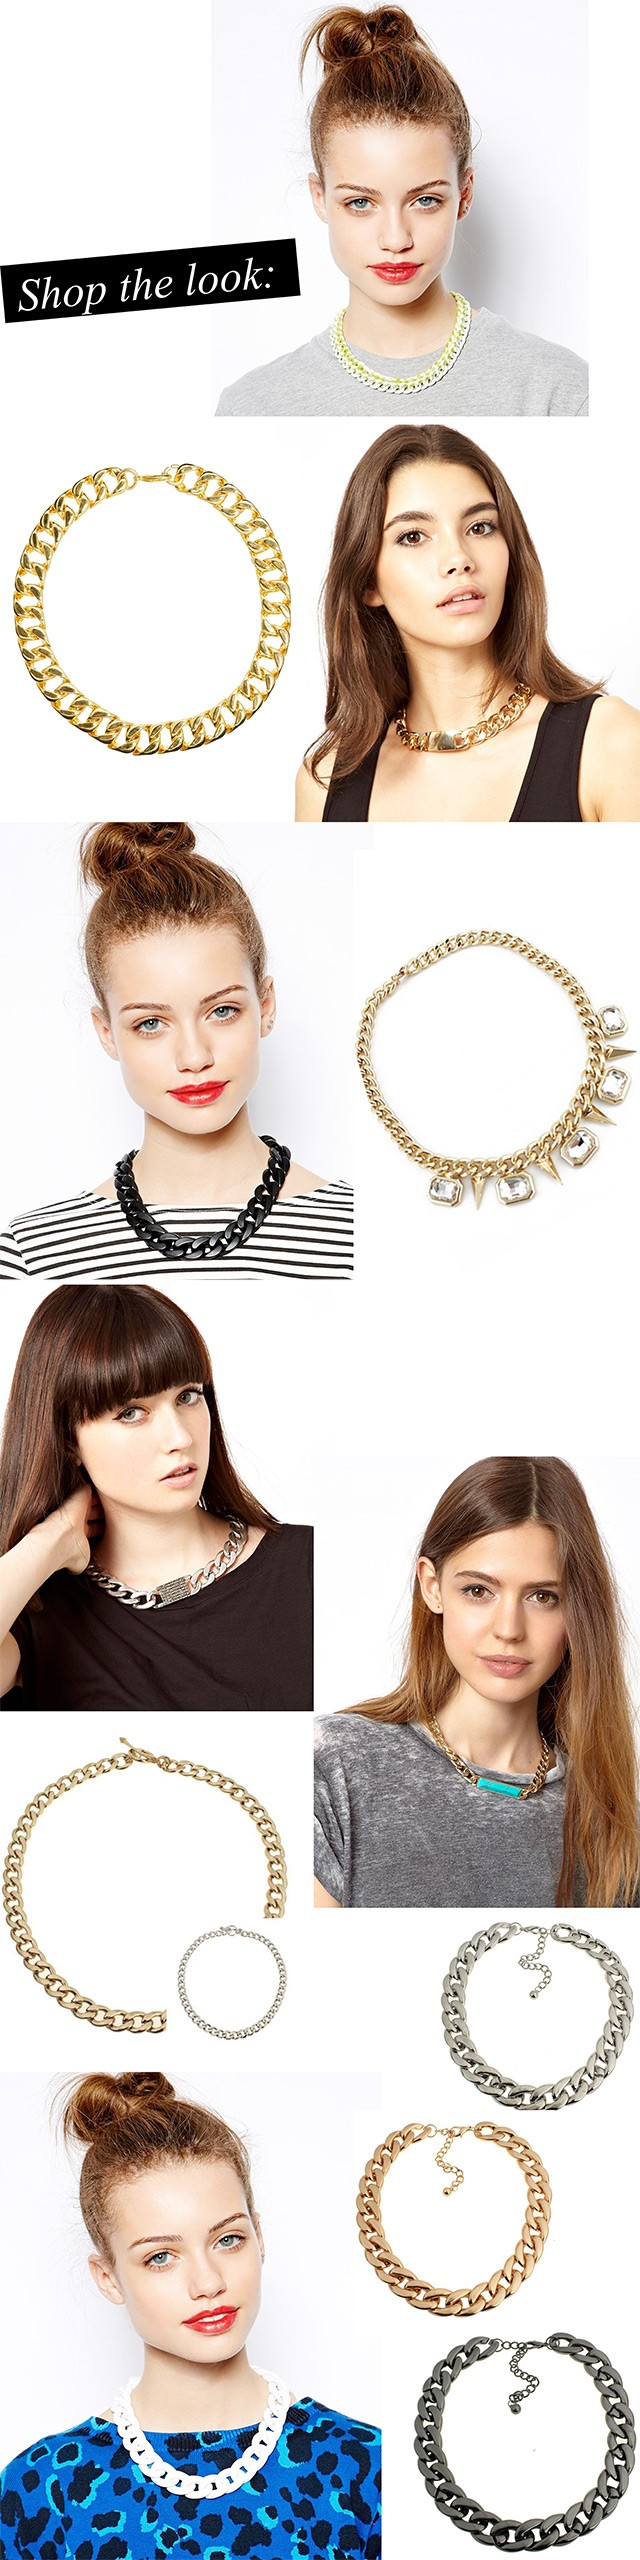 Trending: Chain Necklaces